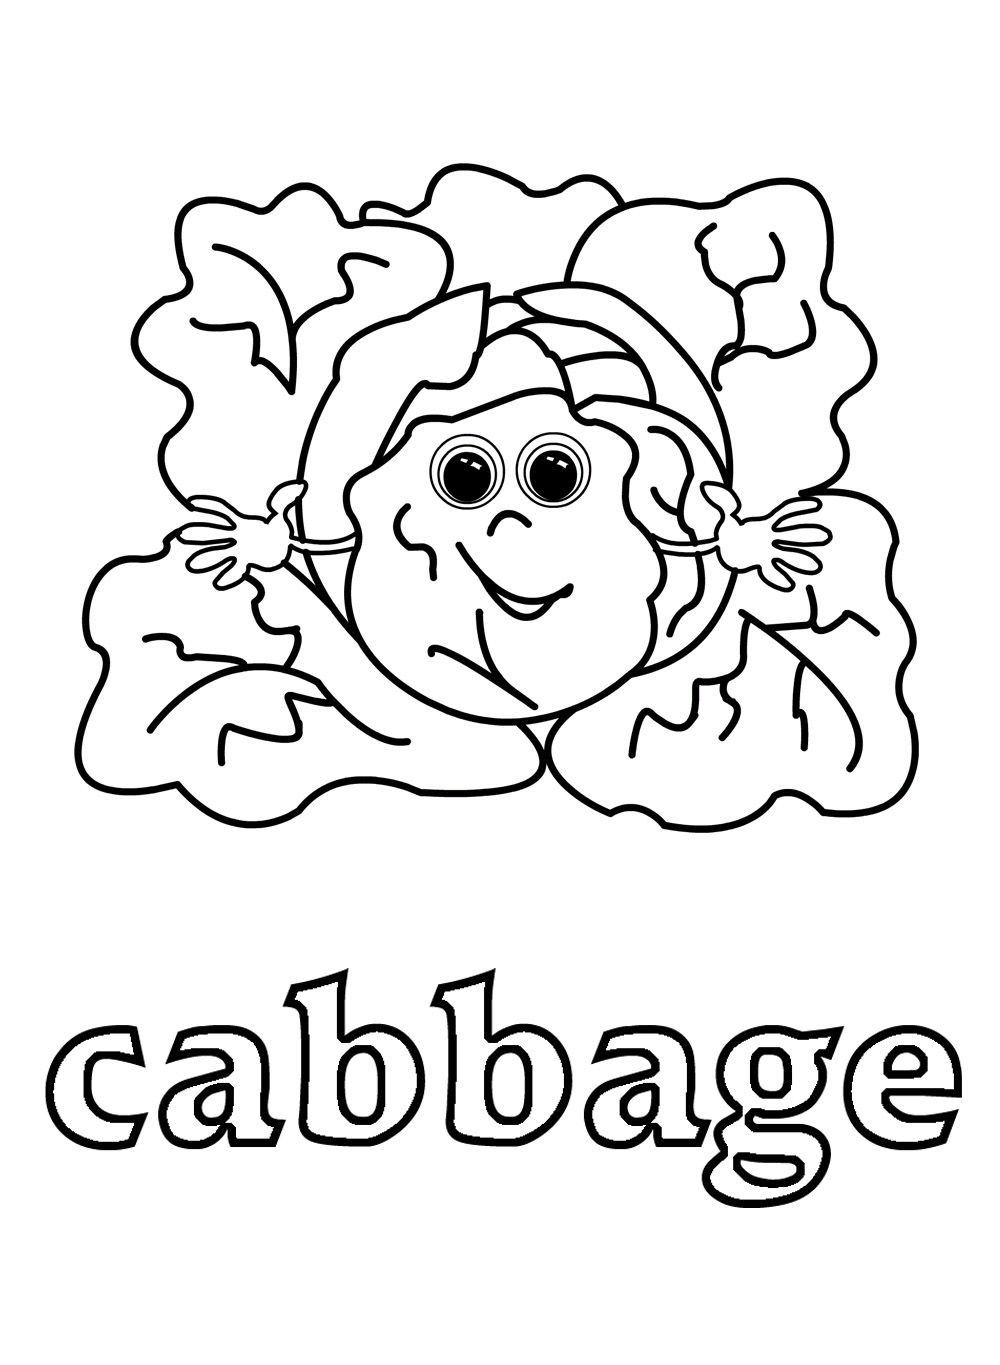 Cabbage Vegetable Coloring Pages Vegetable Coloring Pages